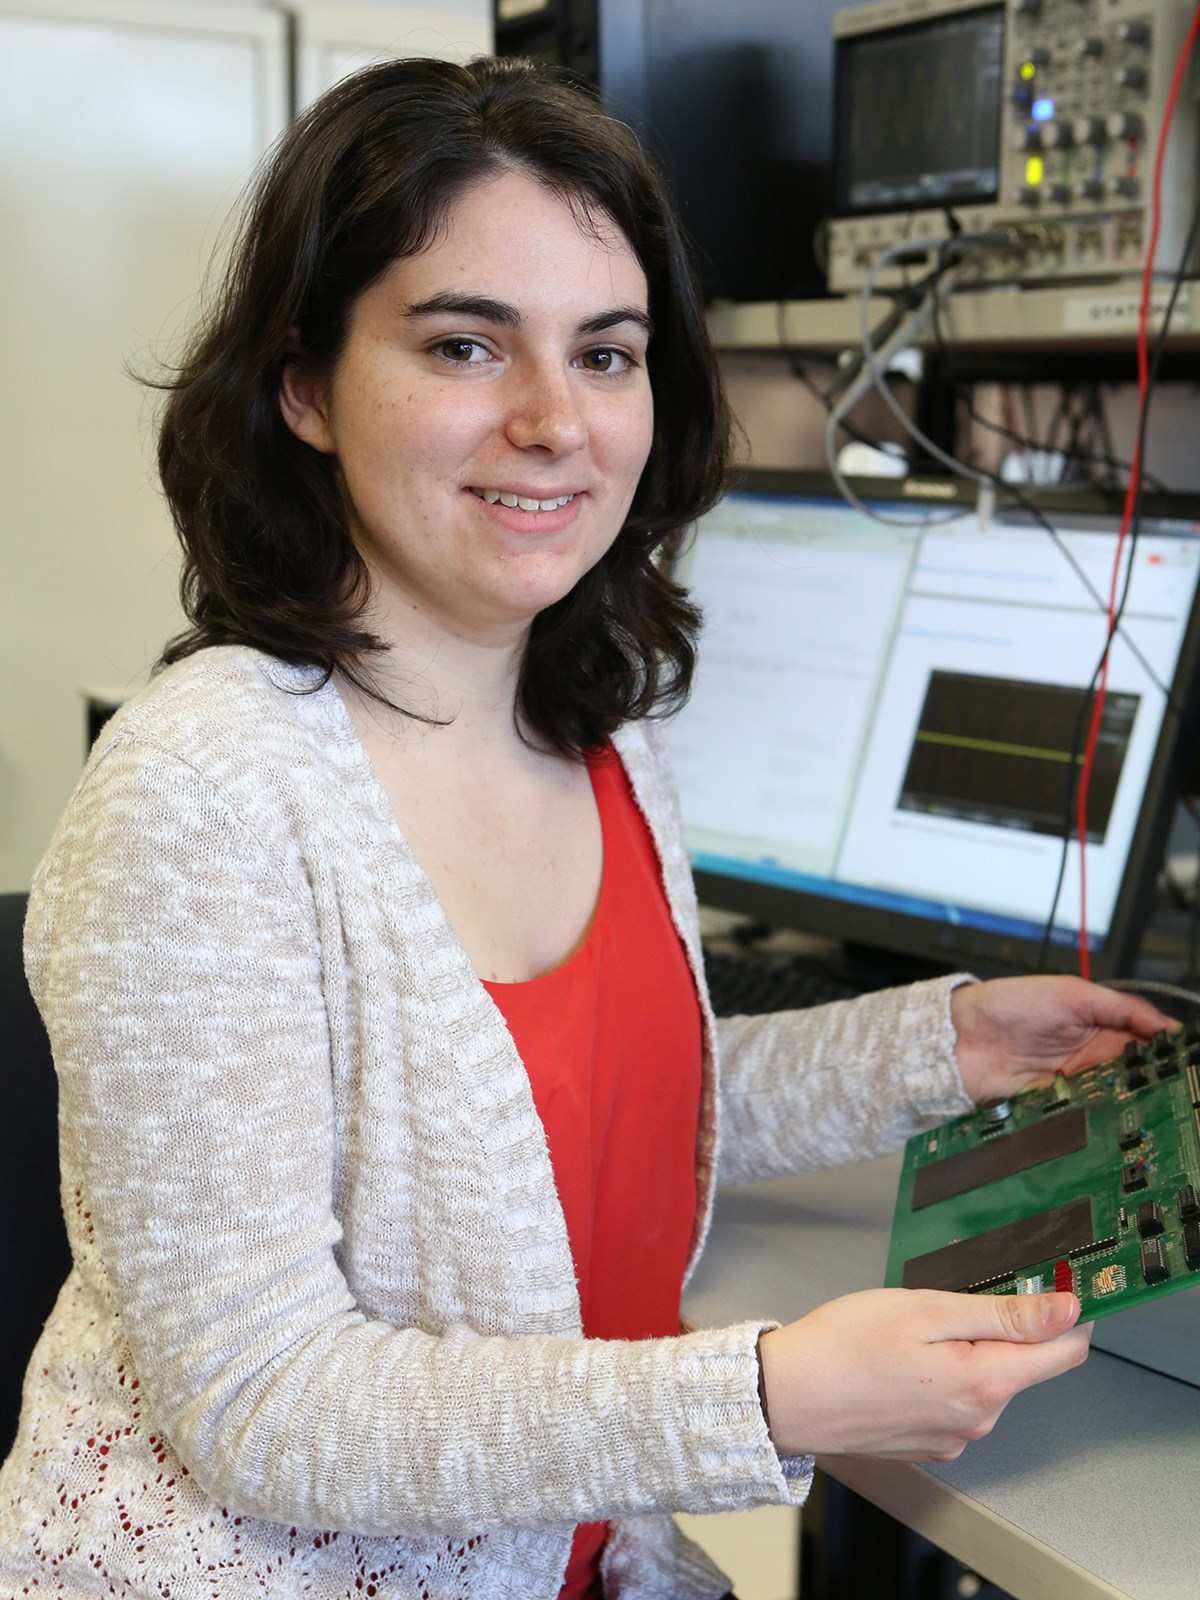 ECE student, Erin Graceffa poses with electrical equipment and holding a circuit.